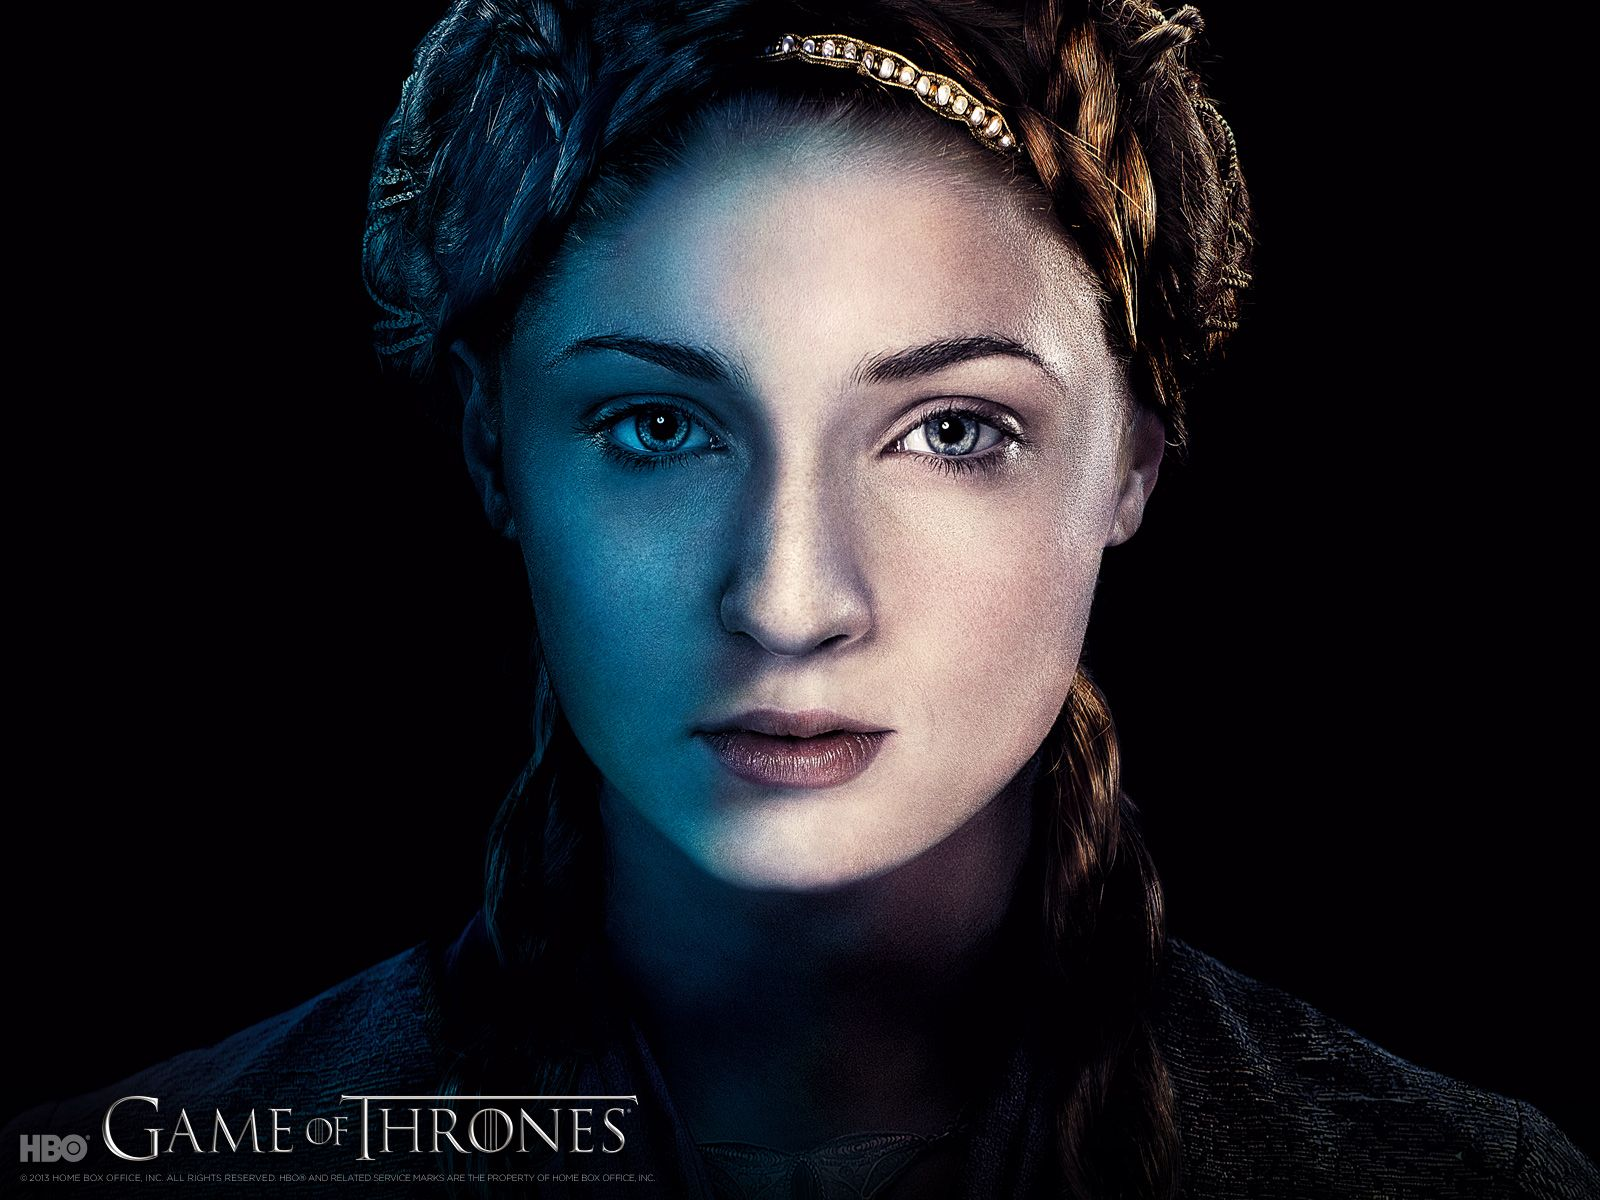 game of thrones season 3 episode 2 english subtitles free download